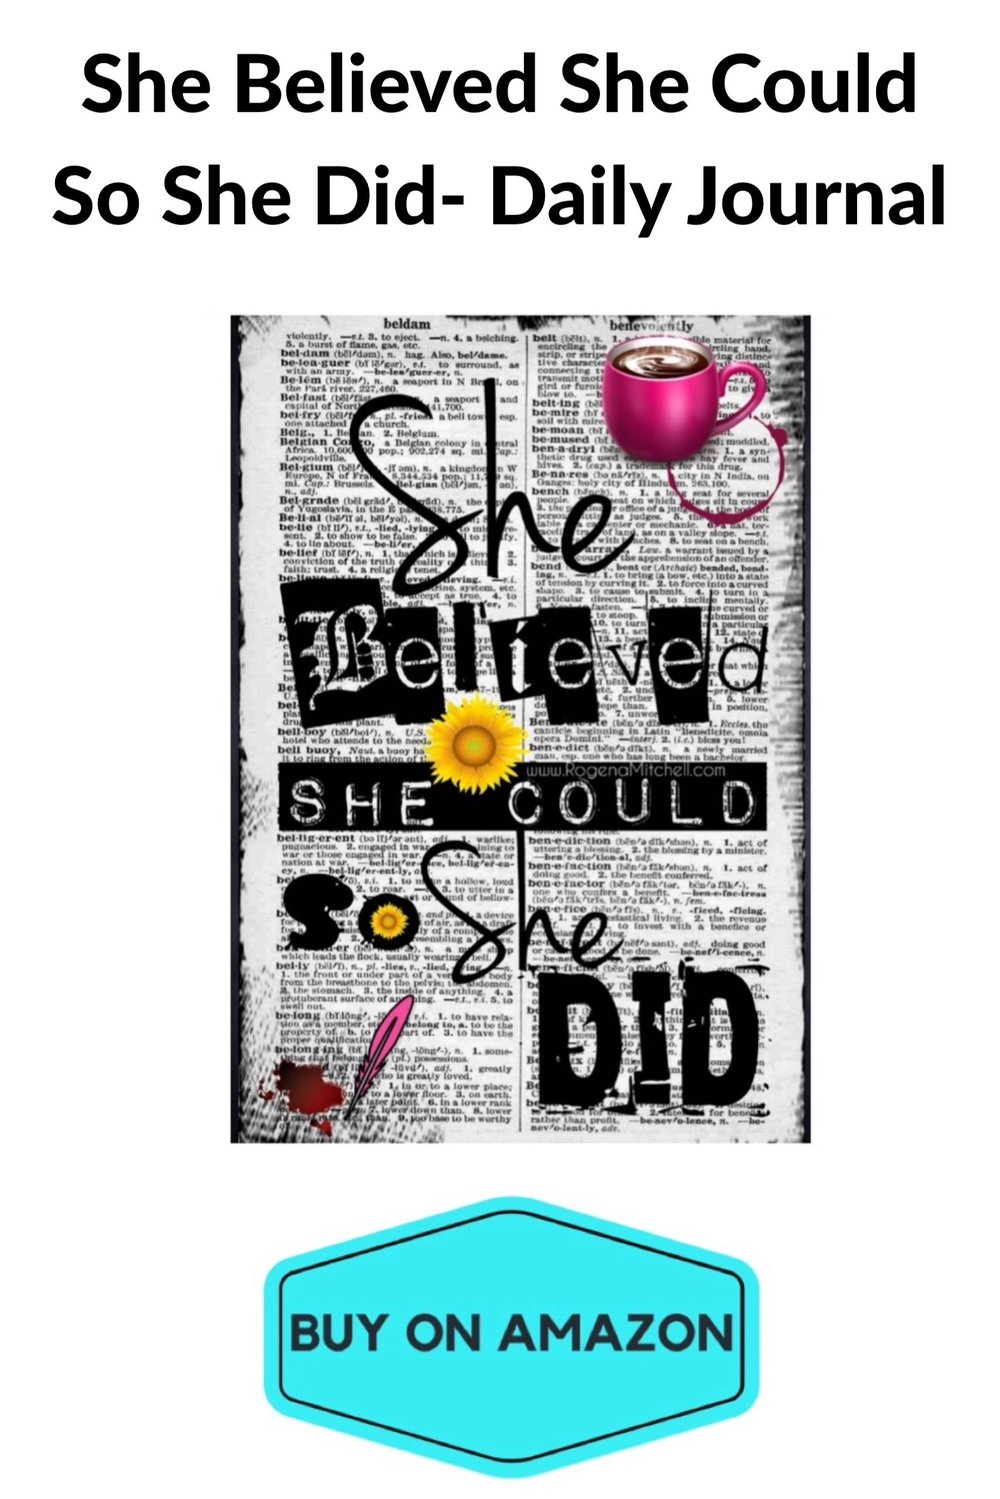 'She Believed She Could So She Did' Daily Journal